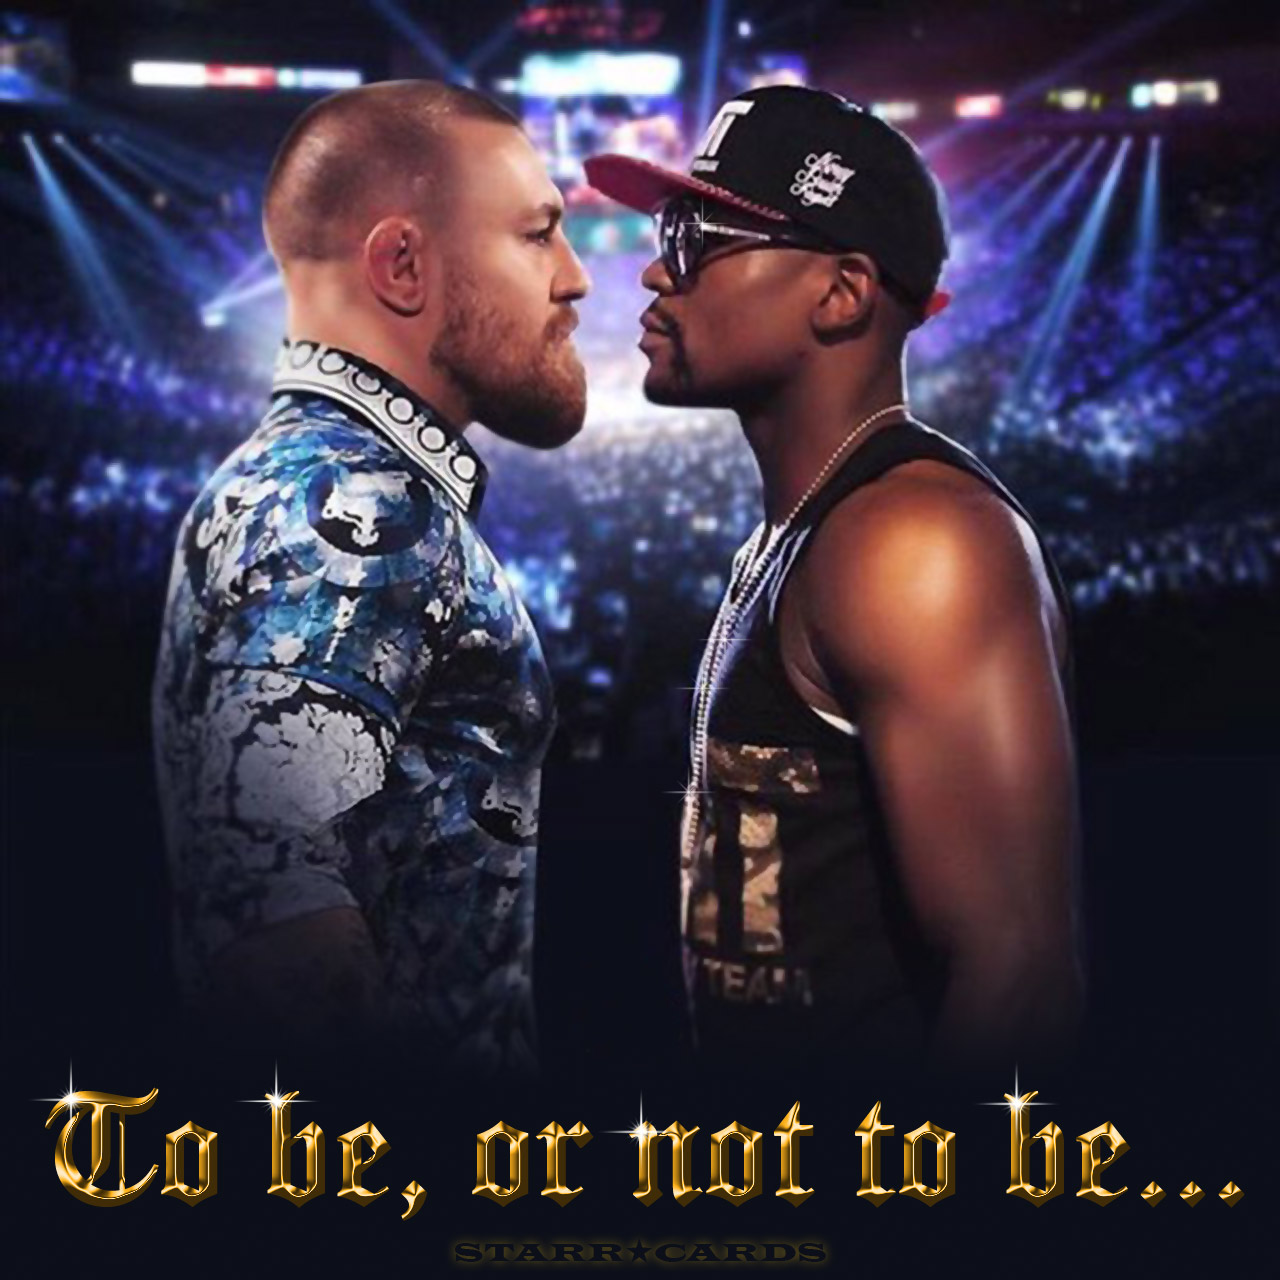 Floyd Mayweather Vs Conor McGregor To Be Or Not To Be